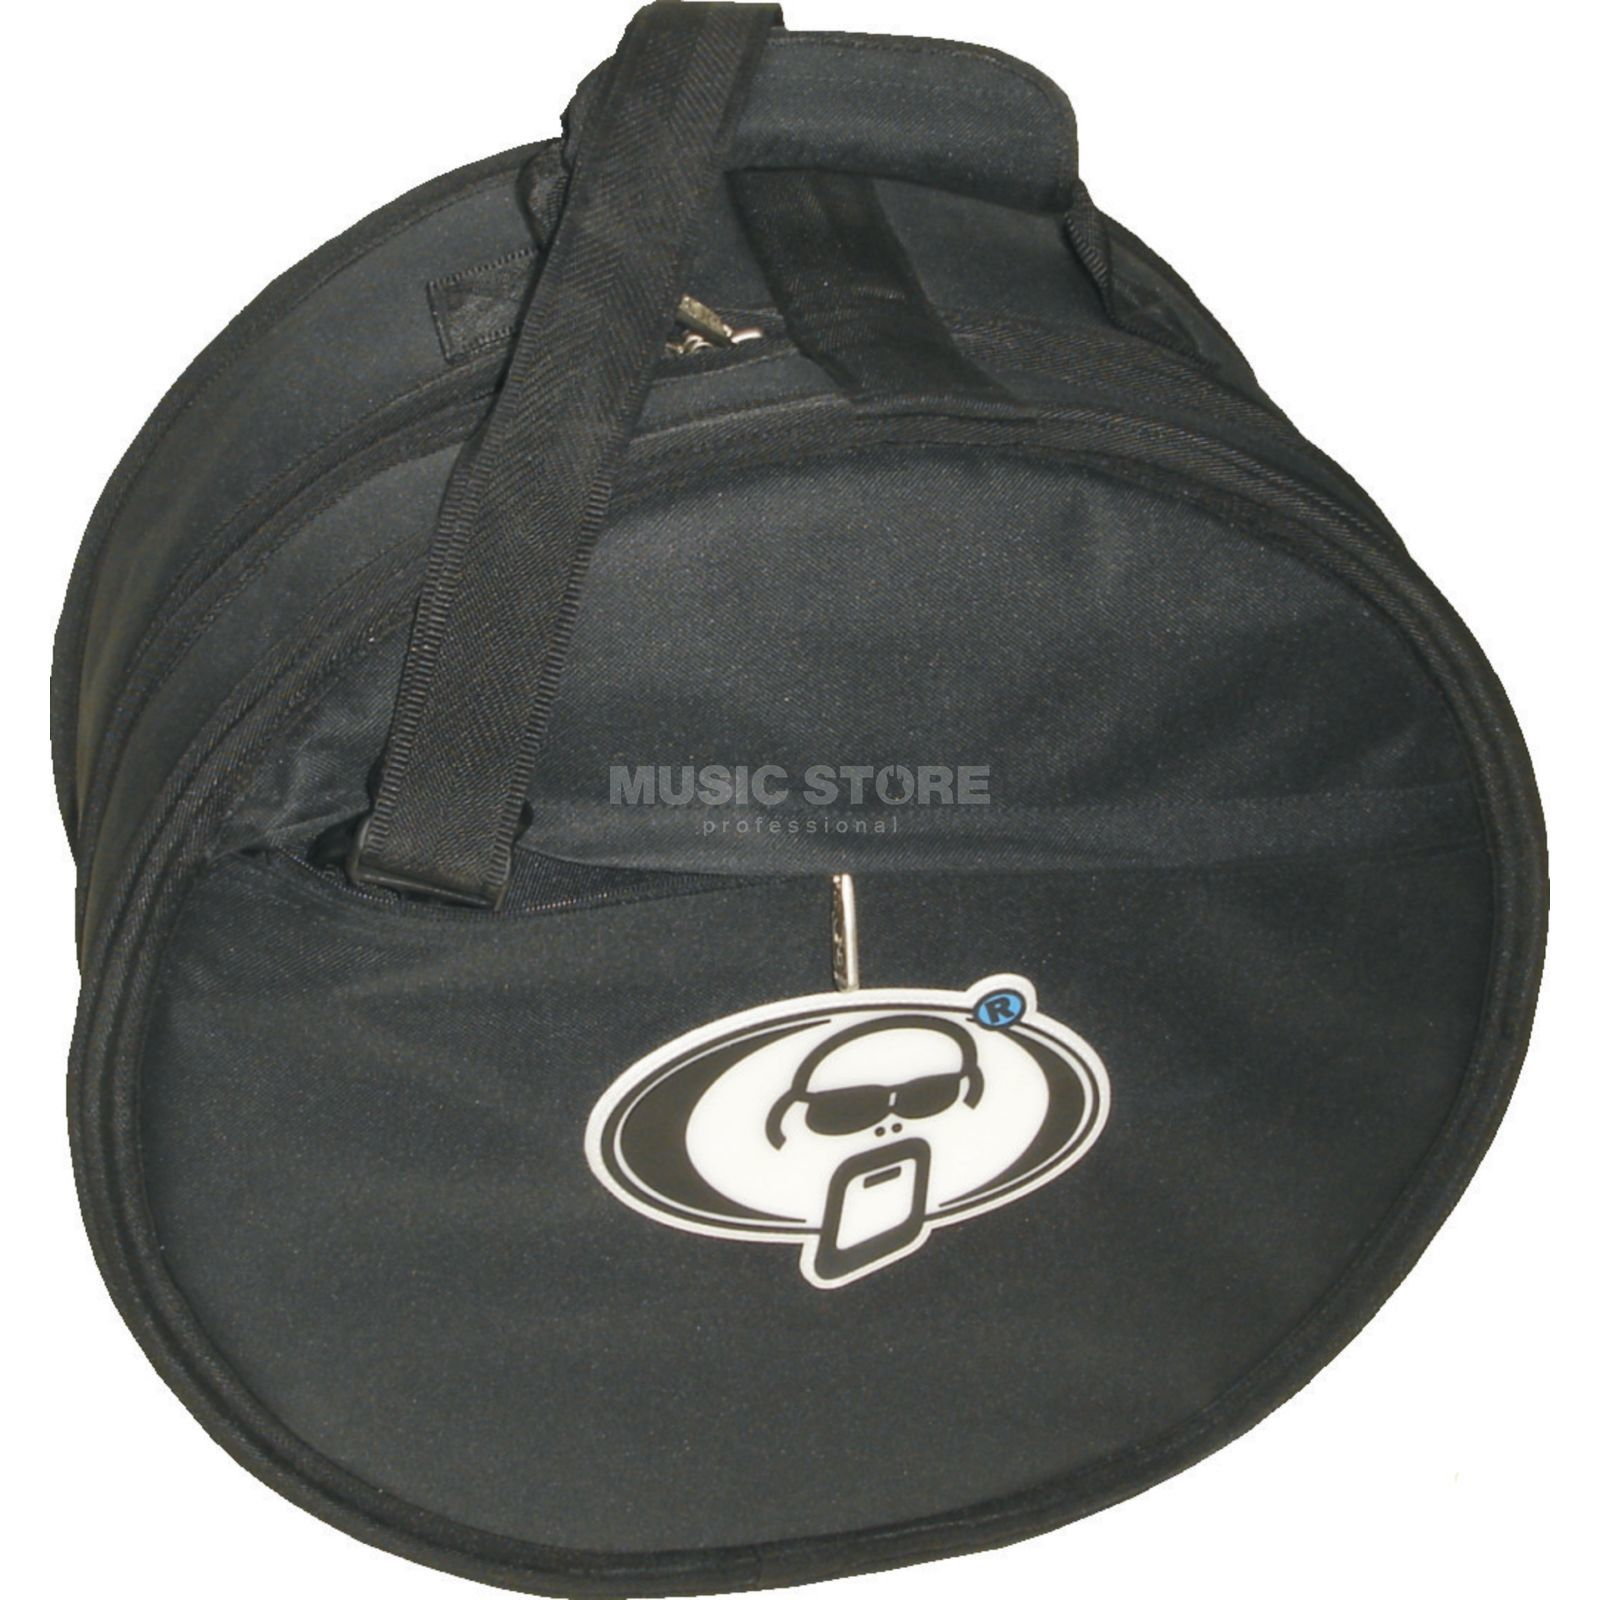 "Protection Racket Snare Bag 3006CS, 14""x6,5"", w/Shoulder Strap Изображение товара"